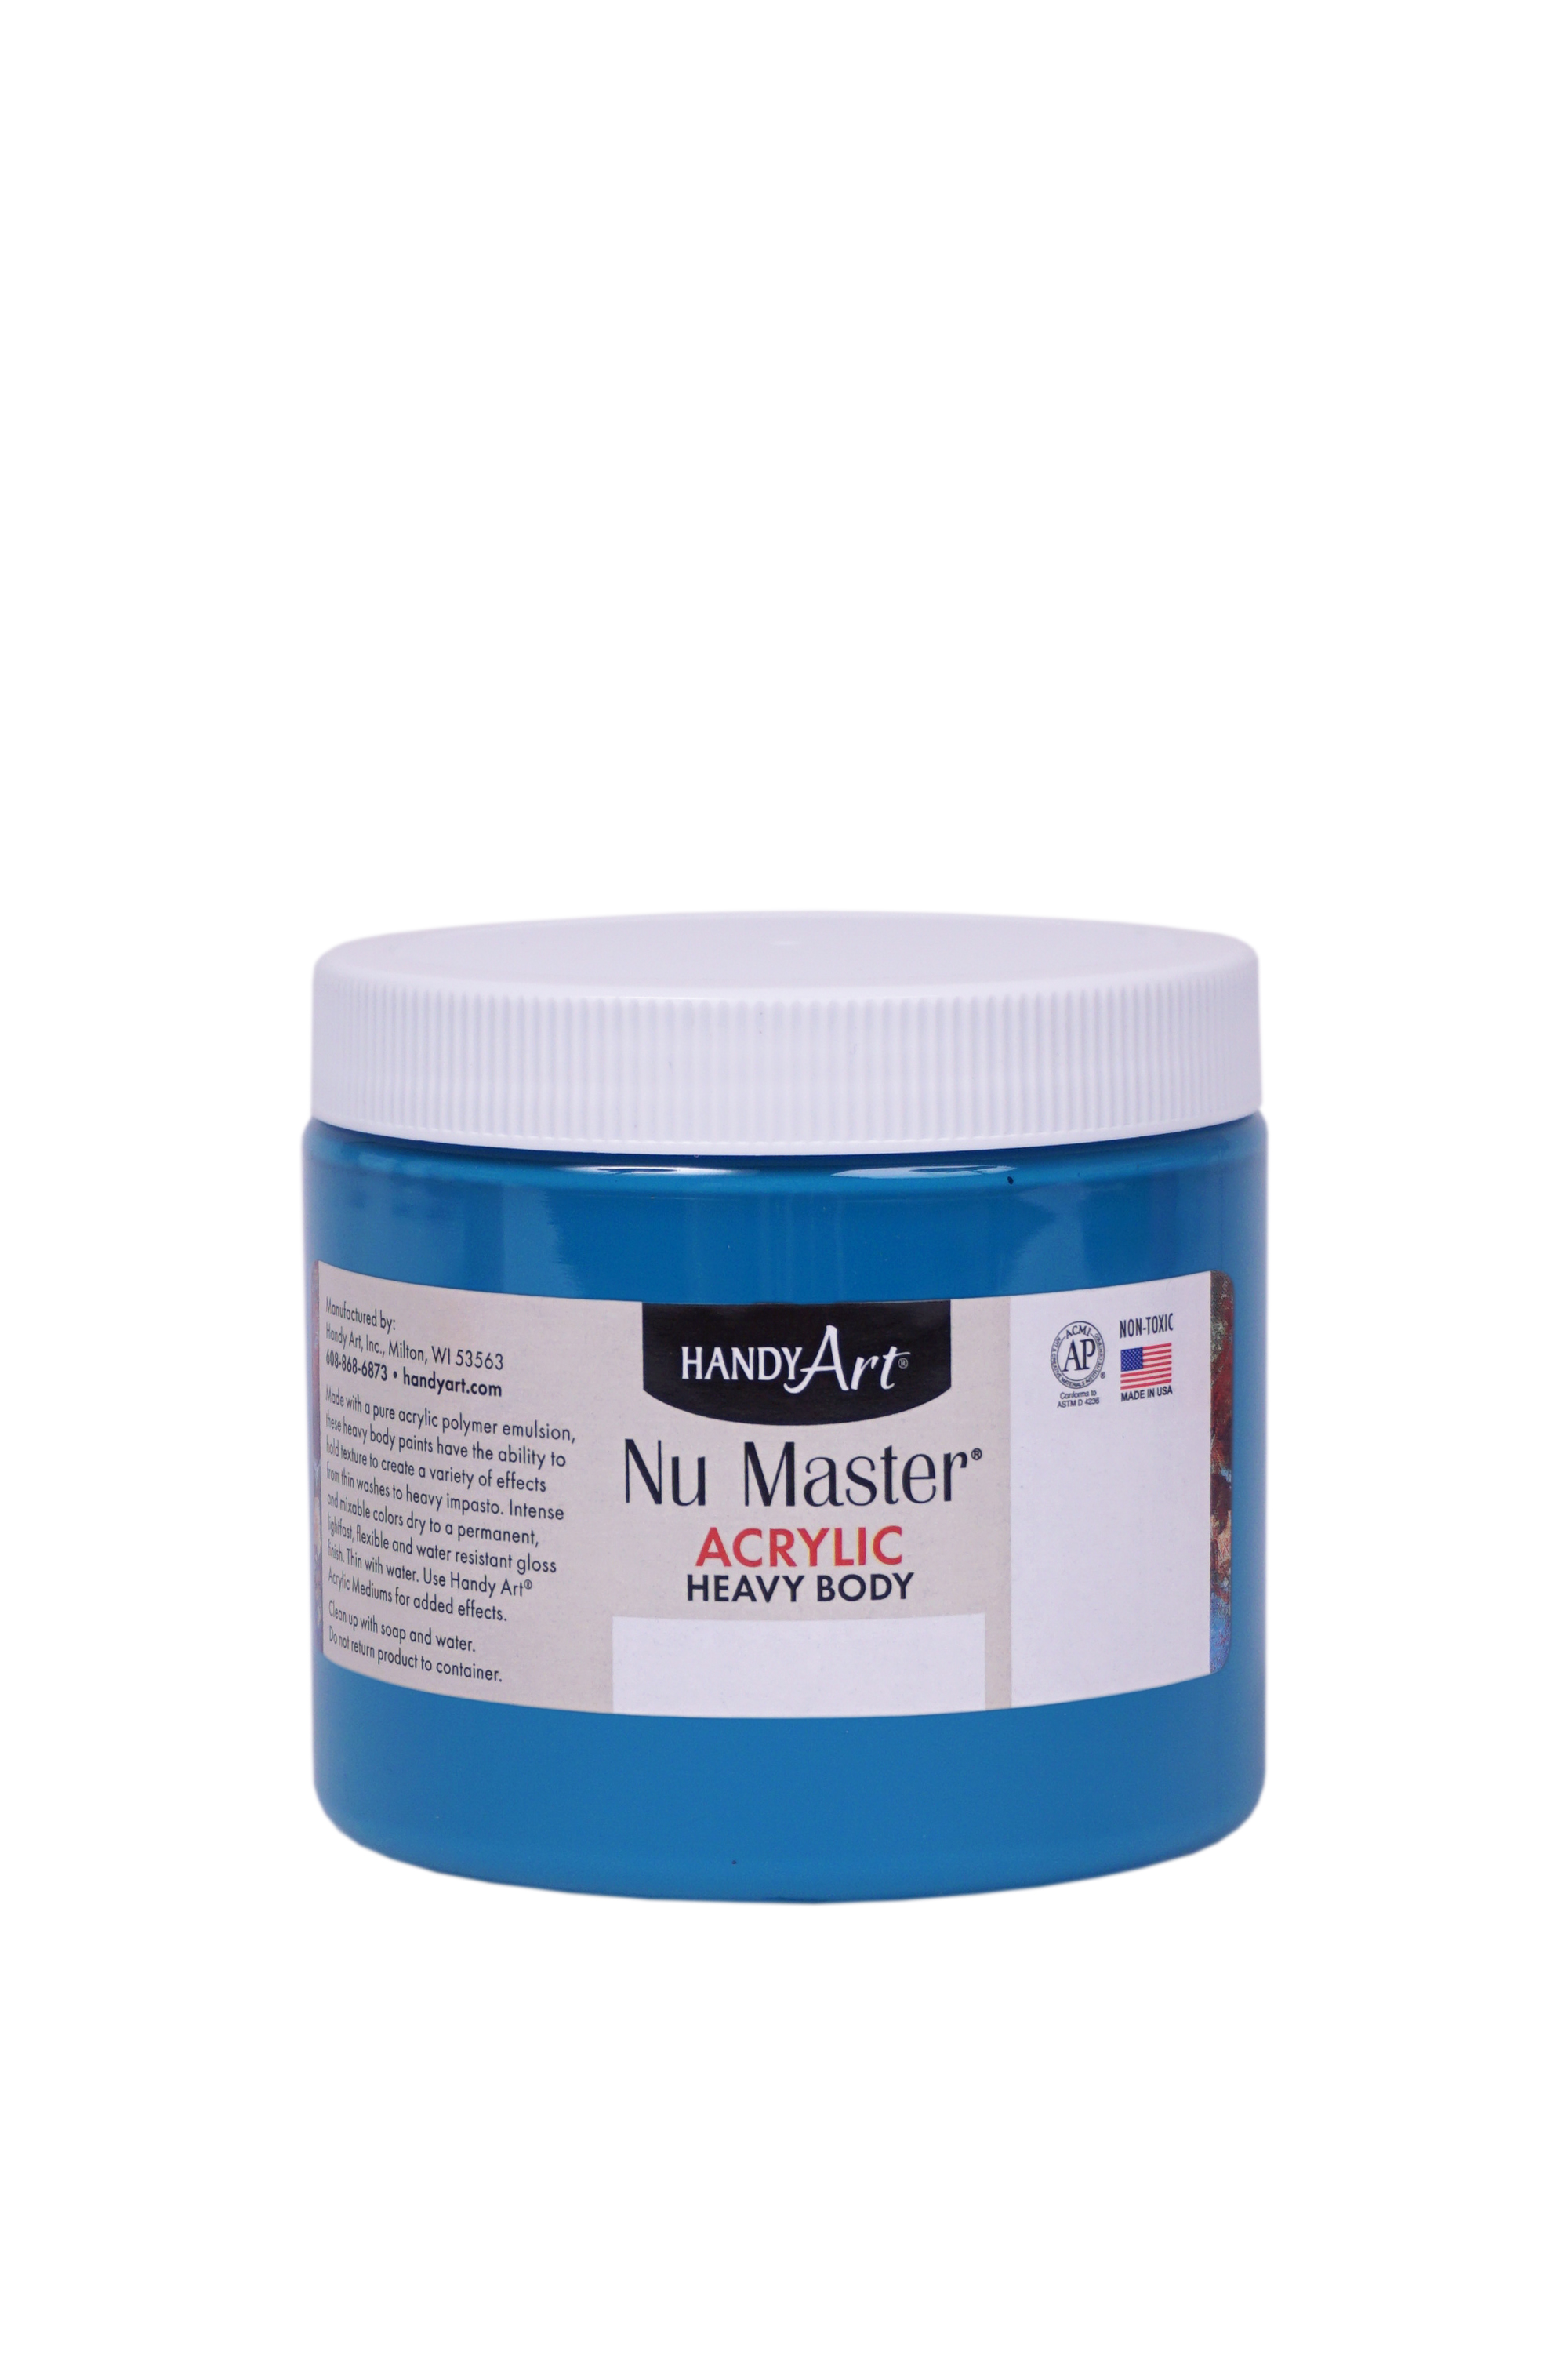 Handy Art 701056 Nu Master Heavy Body Acrylic Turquoise Green- 16 oz